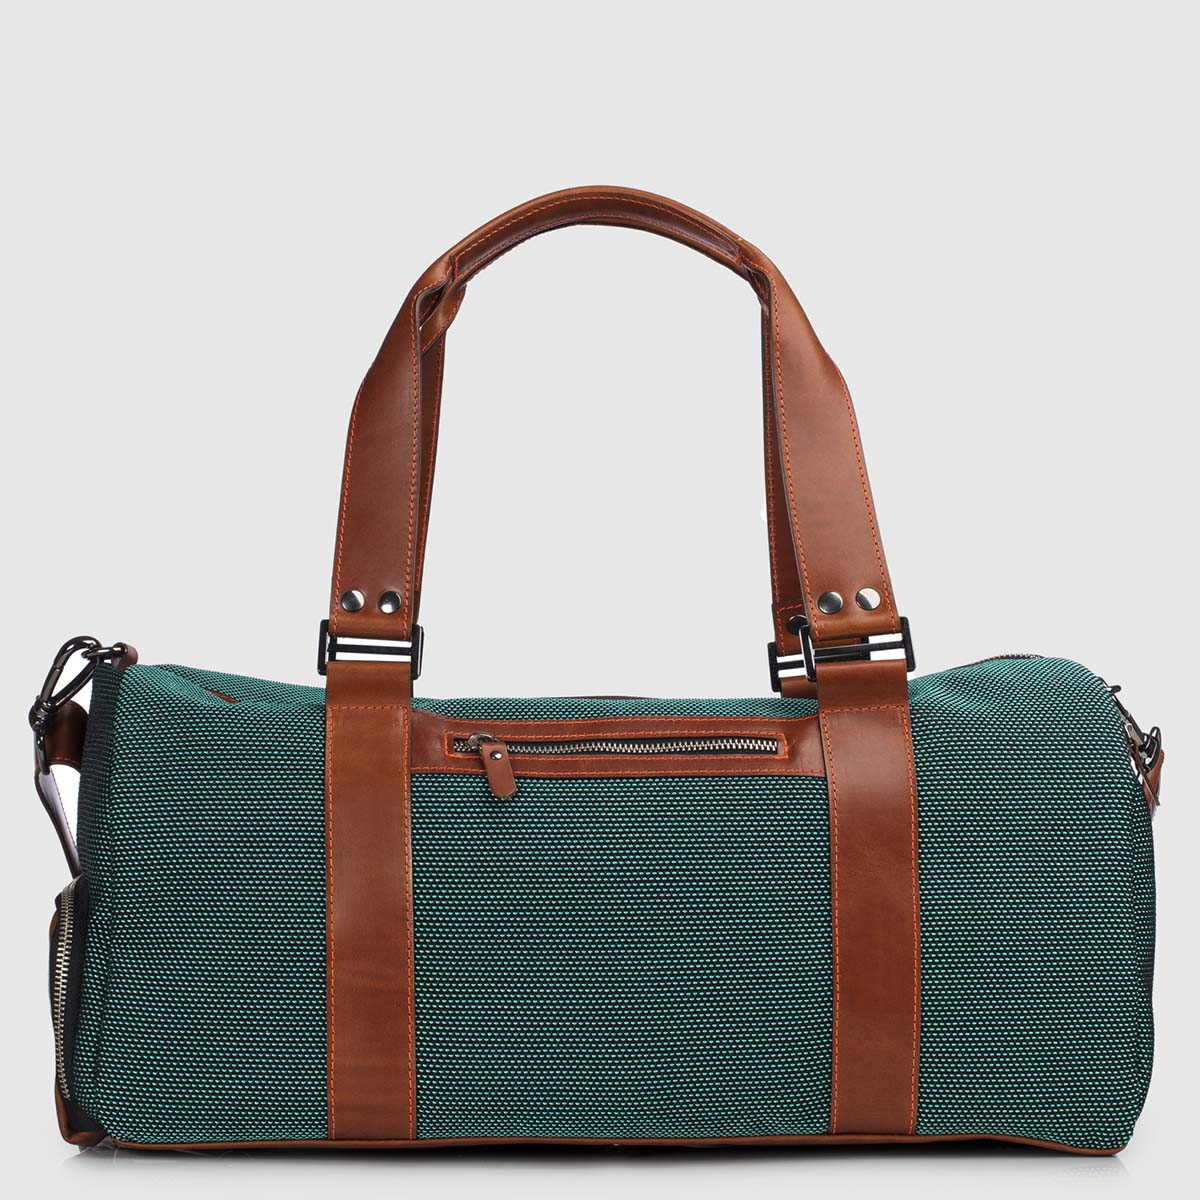 Green Stardust & Cognac Leather Duffle-bag